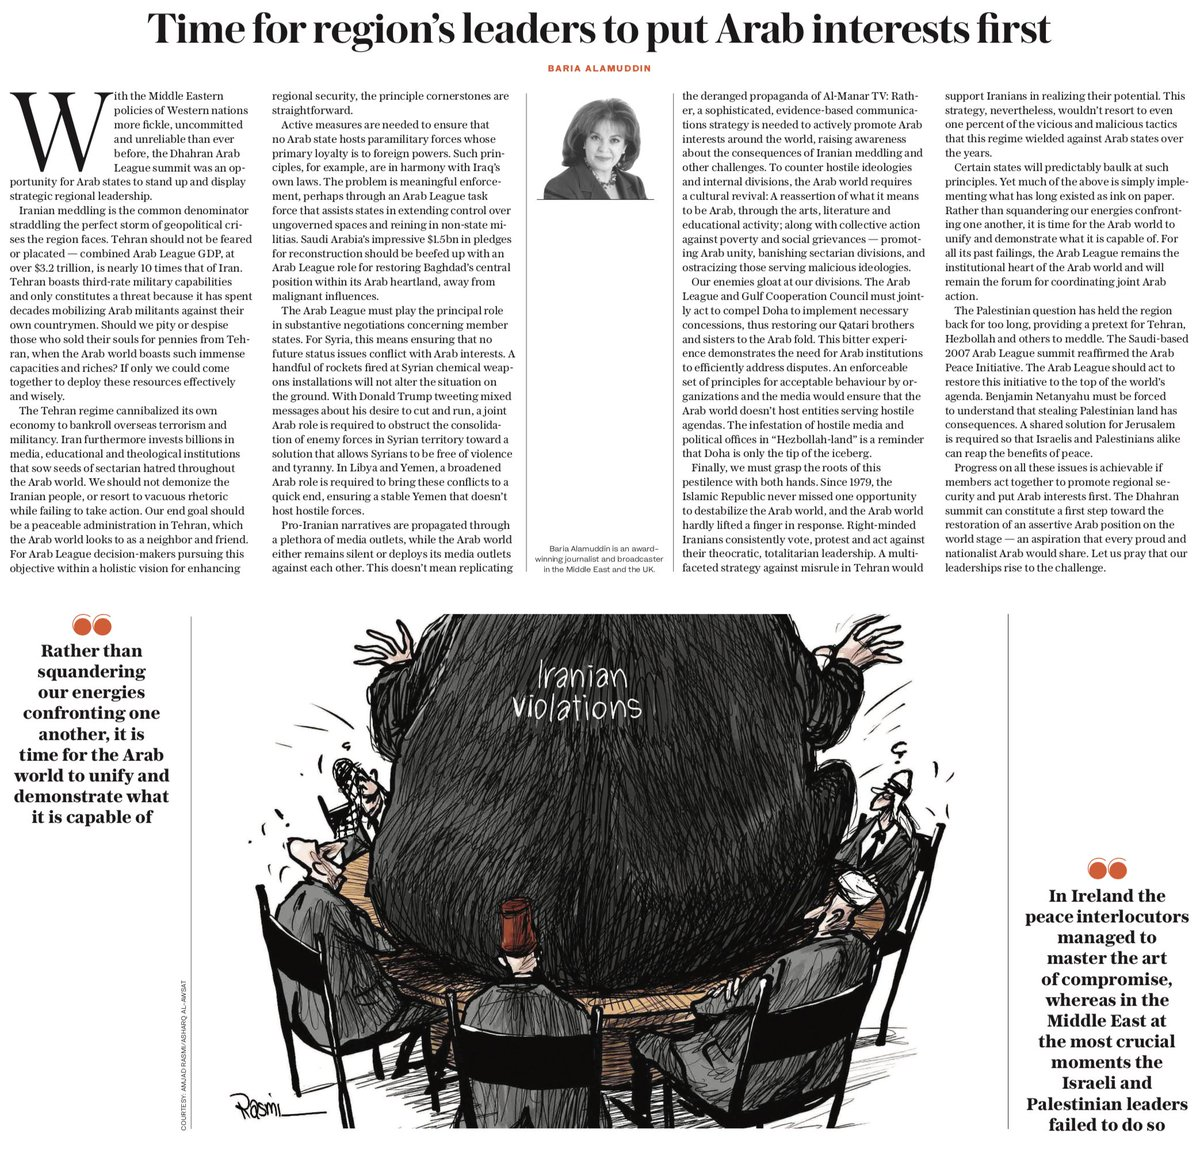 OP-ED: The @ArabLeague  summit can be a first step toward the restoration of an assertive Arab position on the world stage, writes Baria Alamuddin https://t.co/day0ClW296 #Dhahran #JerusalemSummit #ArabLeagueSummit2018